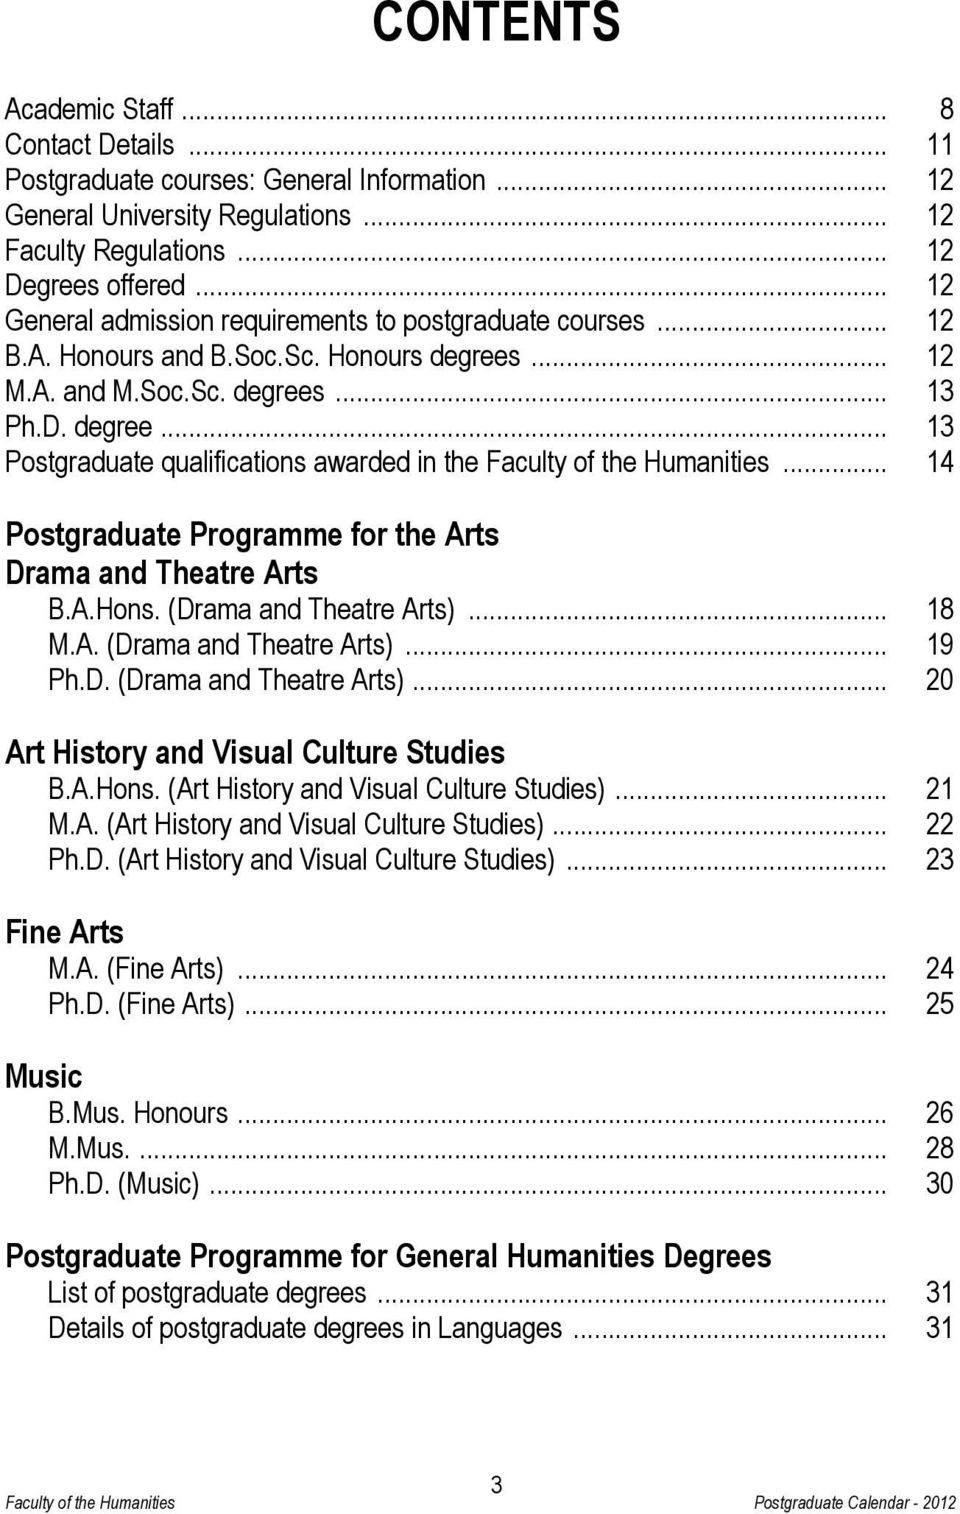 .. 14 Postgraduate Programme for the Arts Drama and Theatre Arts B.A.Hons. (Drama and Theatre Arts)... 18 M.A. (Drama and Theatre Arts)... 19 Ph.D. (Drama and Theatre Arts)... 20 Art History and Visual Culture Studies B.